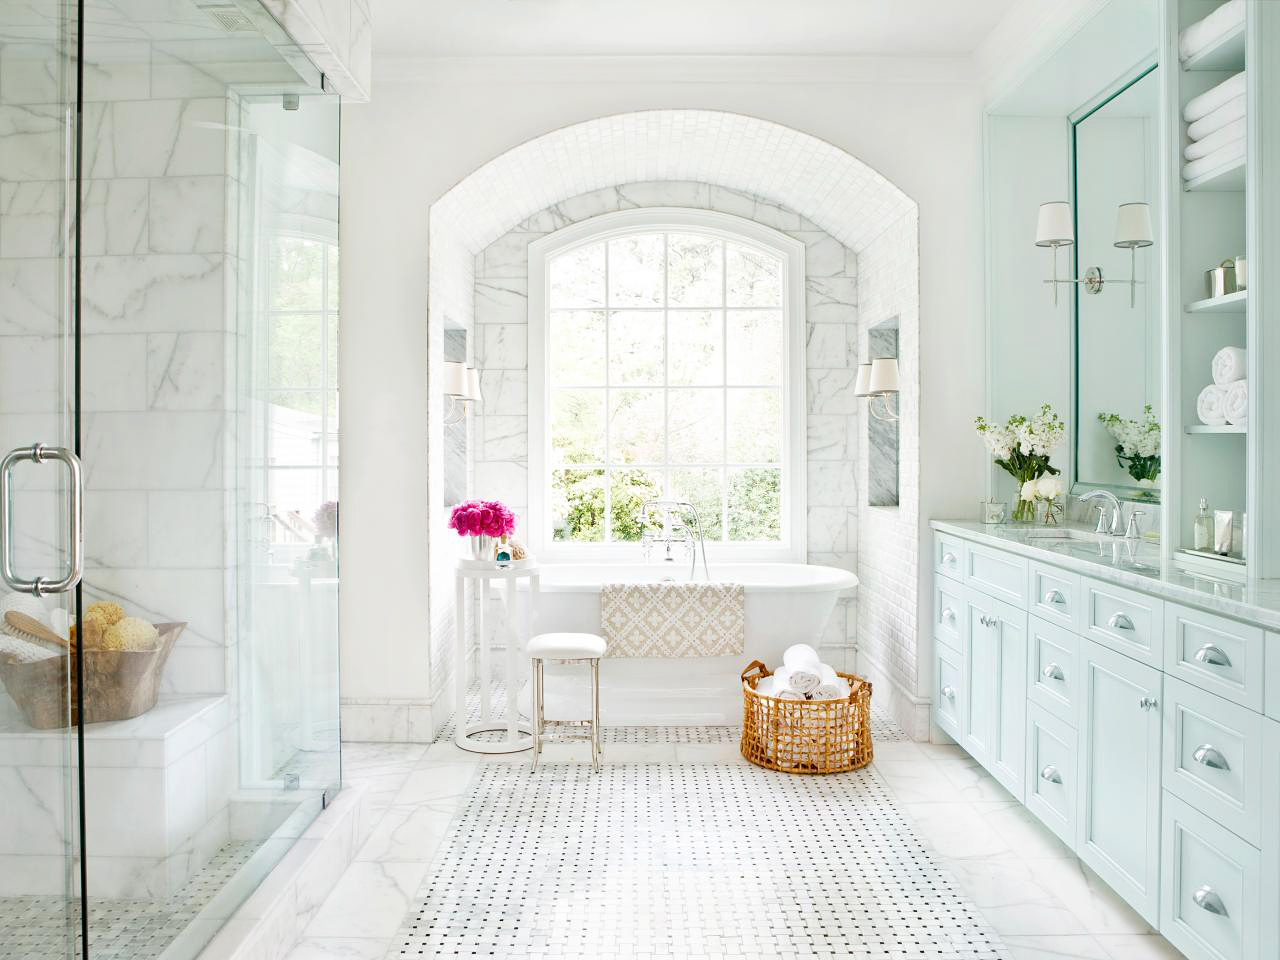 Creating A Timeless Bathroom Look - All You Need To Know – Adorable Home